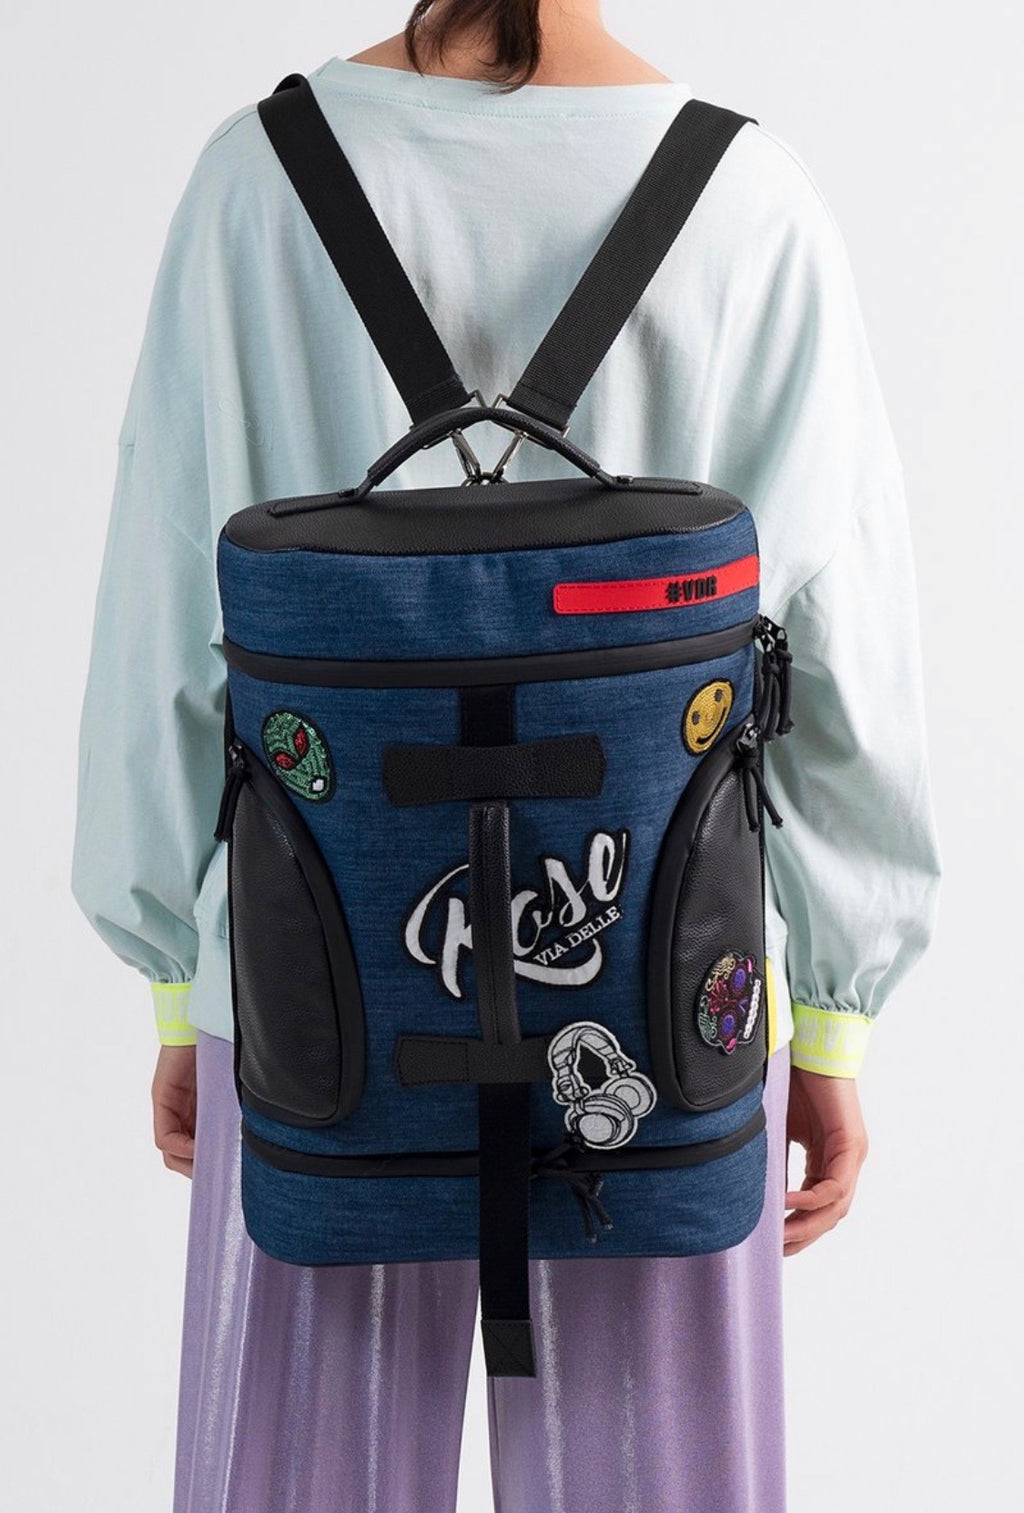 The denim funky back pack